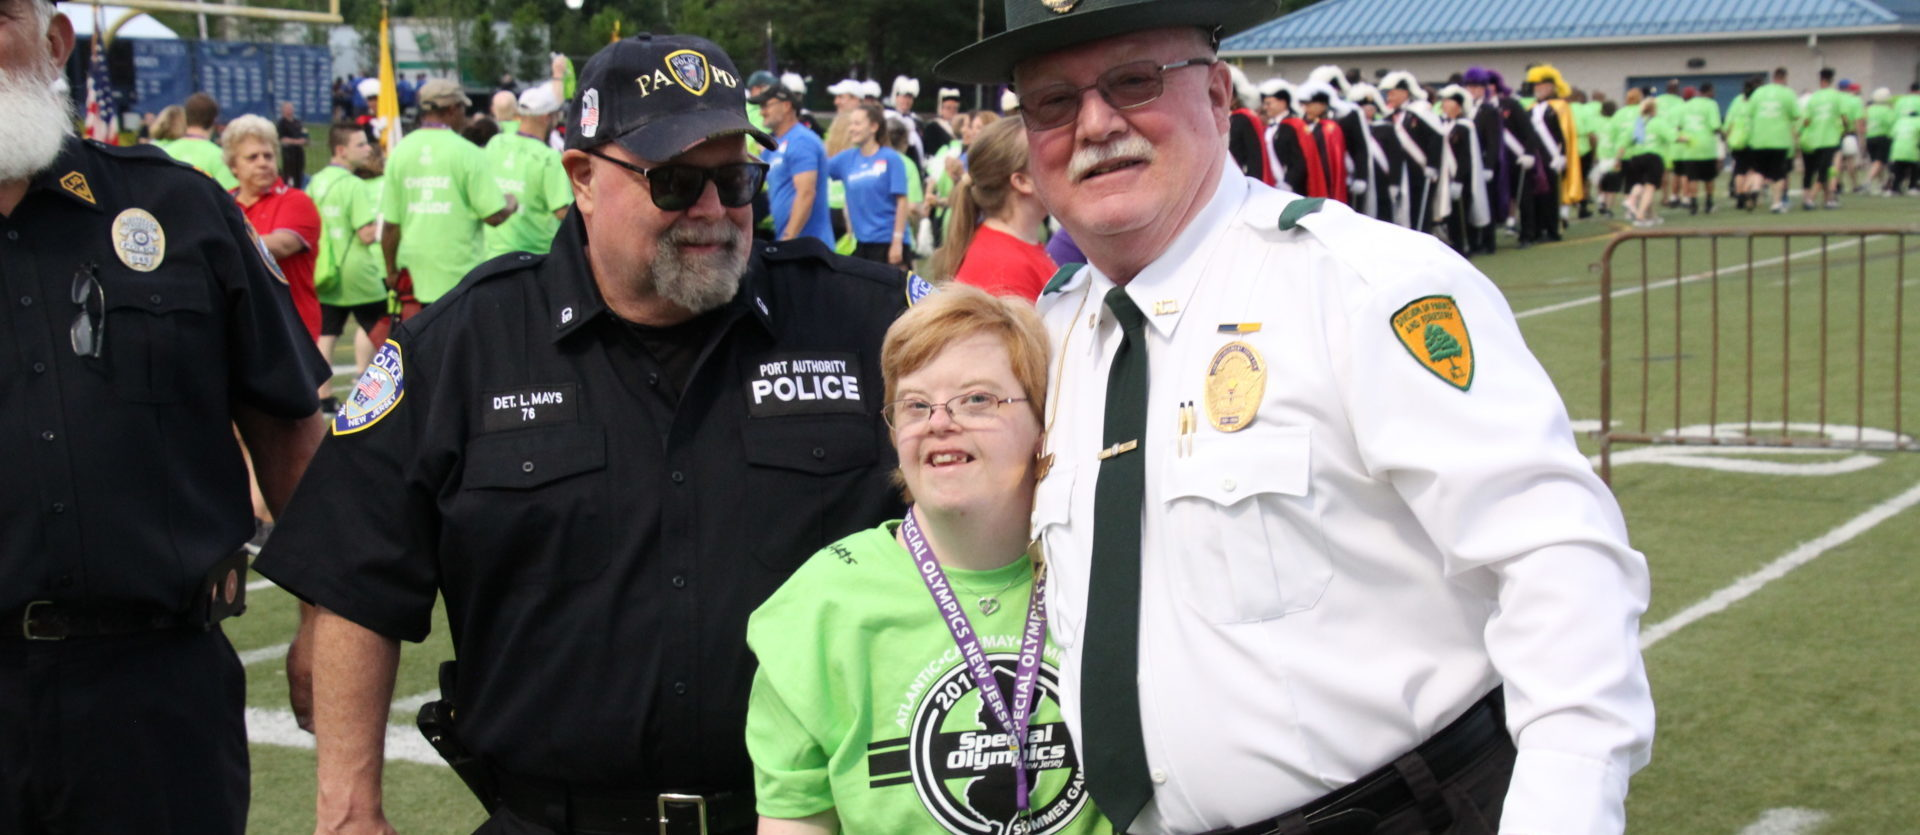 Atlantic, Cape May and Cumberland Counties | Special Olympics New Jersey